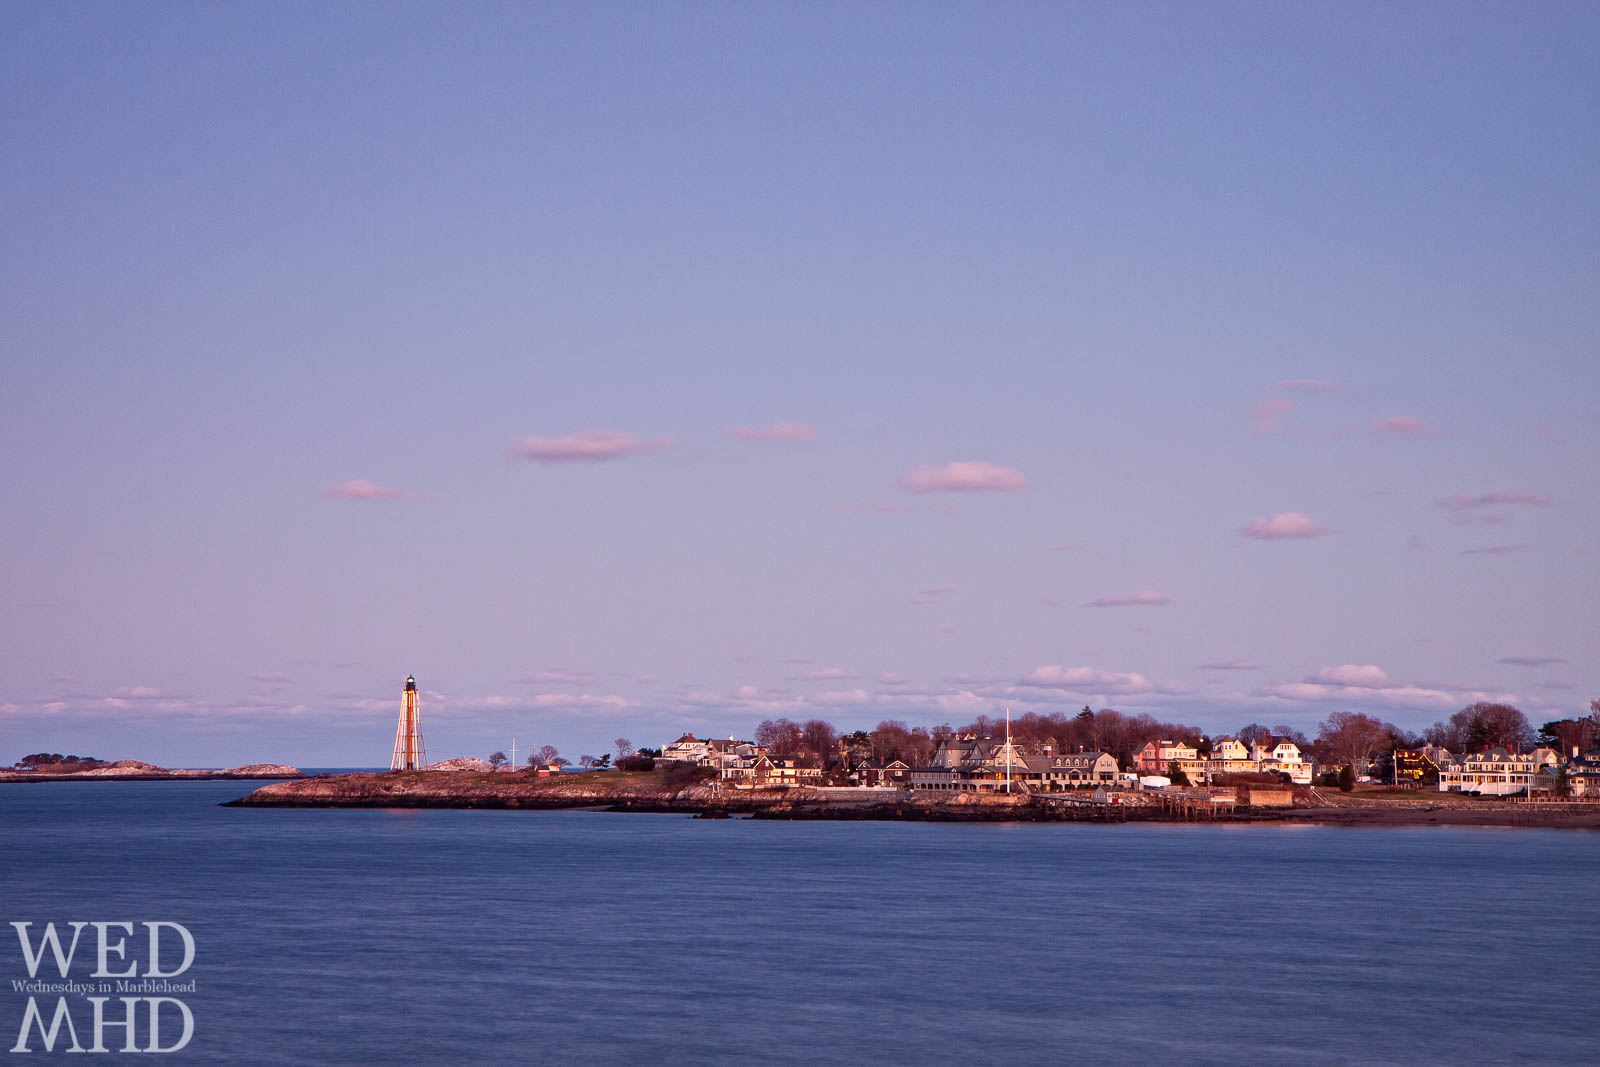 Marblehead Light and Neck are lit up for the holidays in this image from Christmas Eve